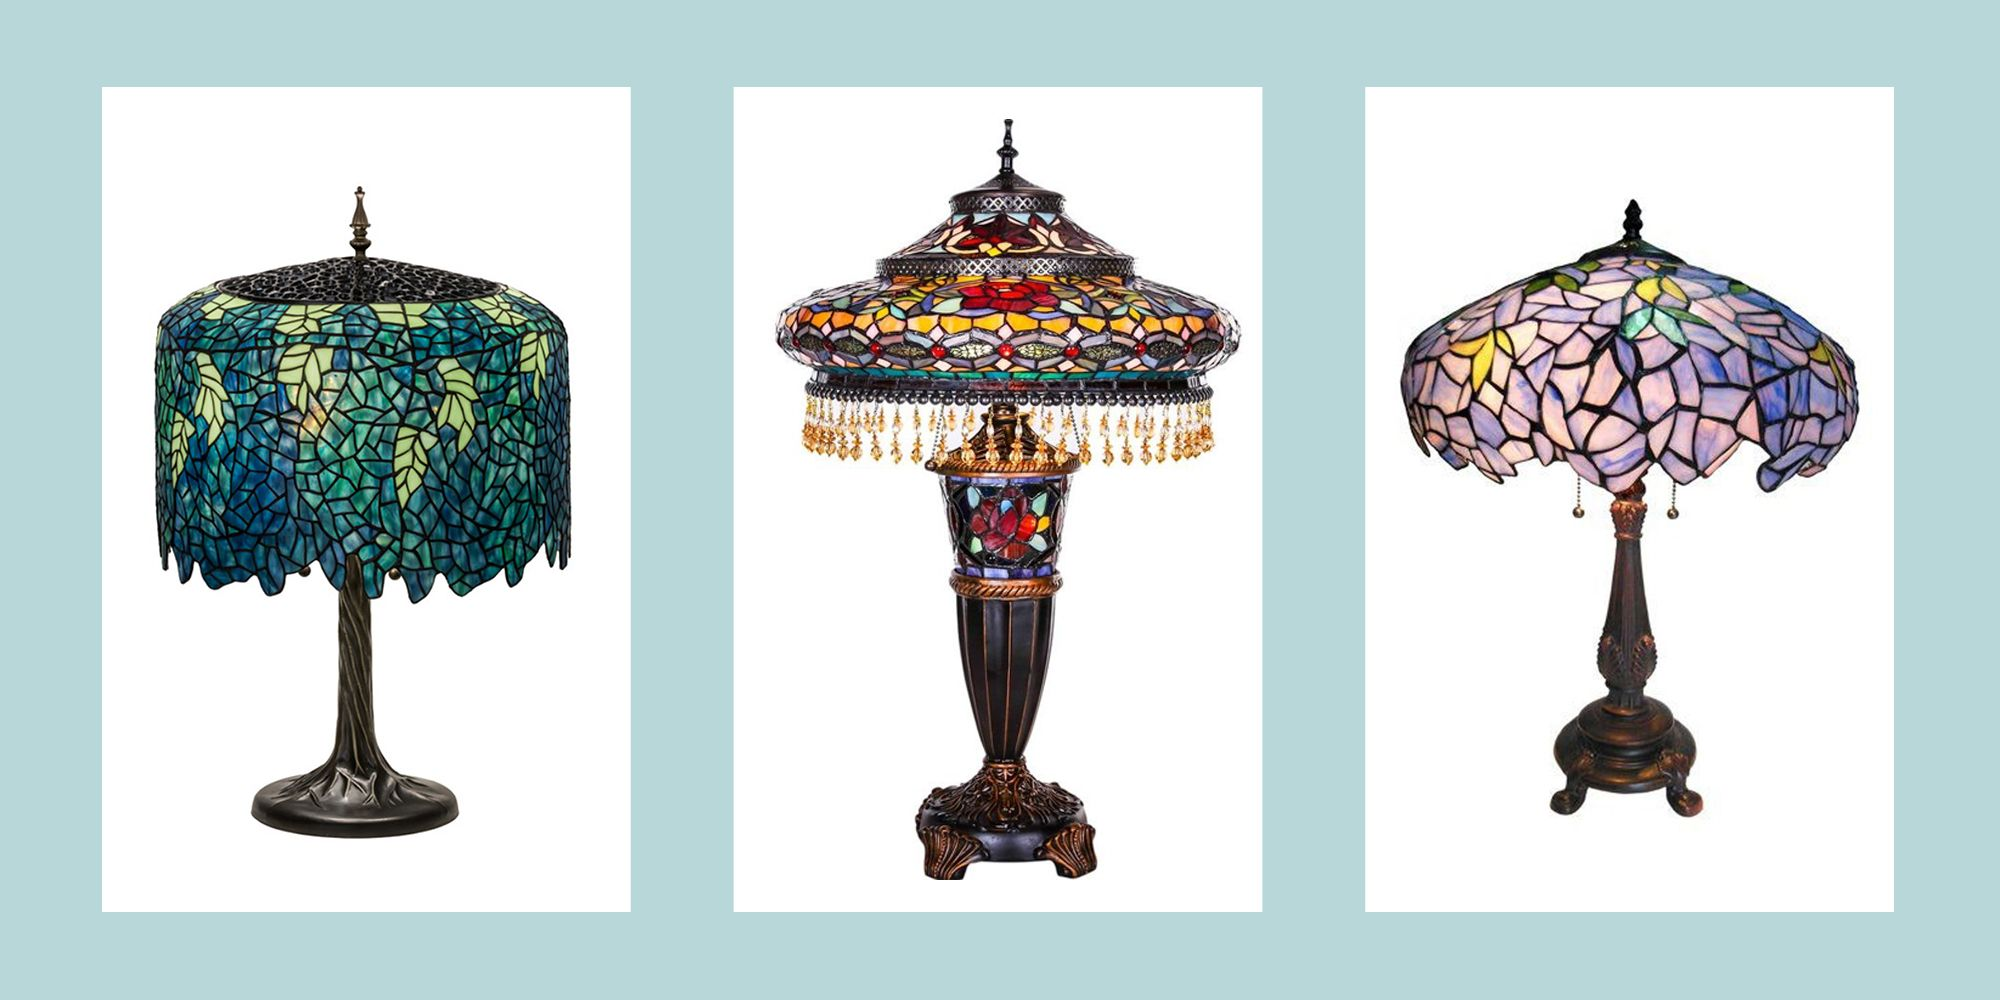 The 15 Best Tiffany-Style Lamps to Buy Online